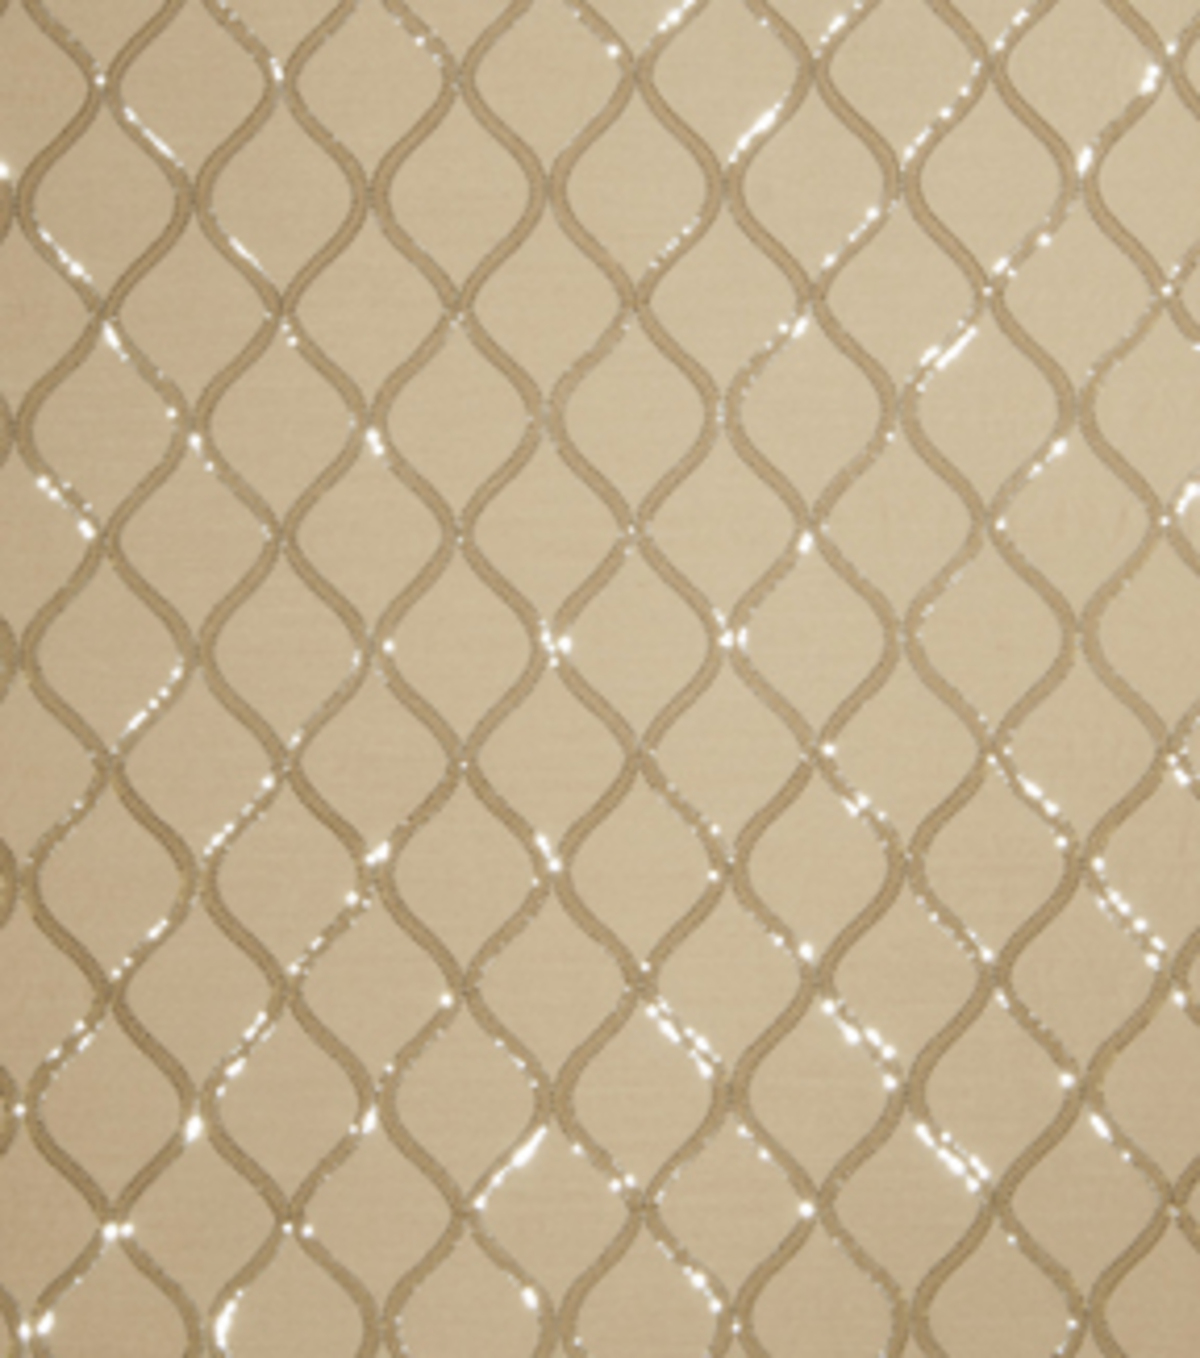 Home Decor 8\u0022x8\u0022 Fabric Swatch-Eaton Square Freeport Silver Sand